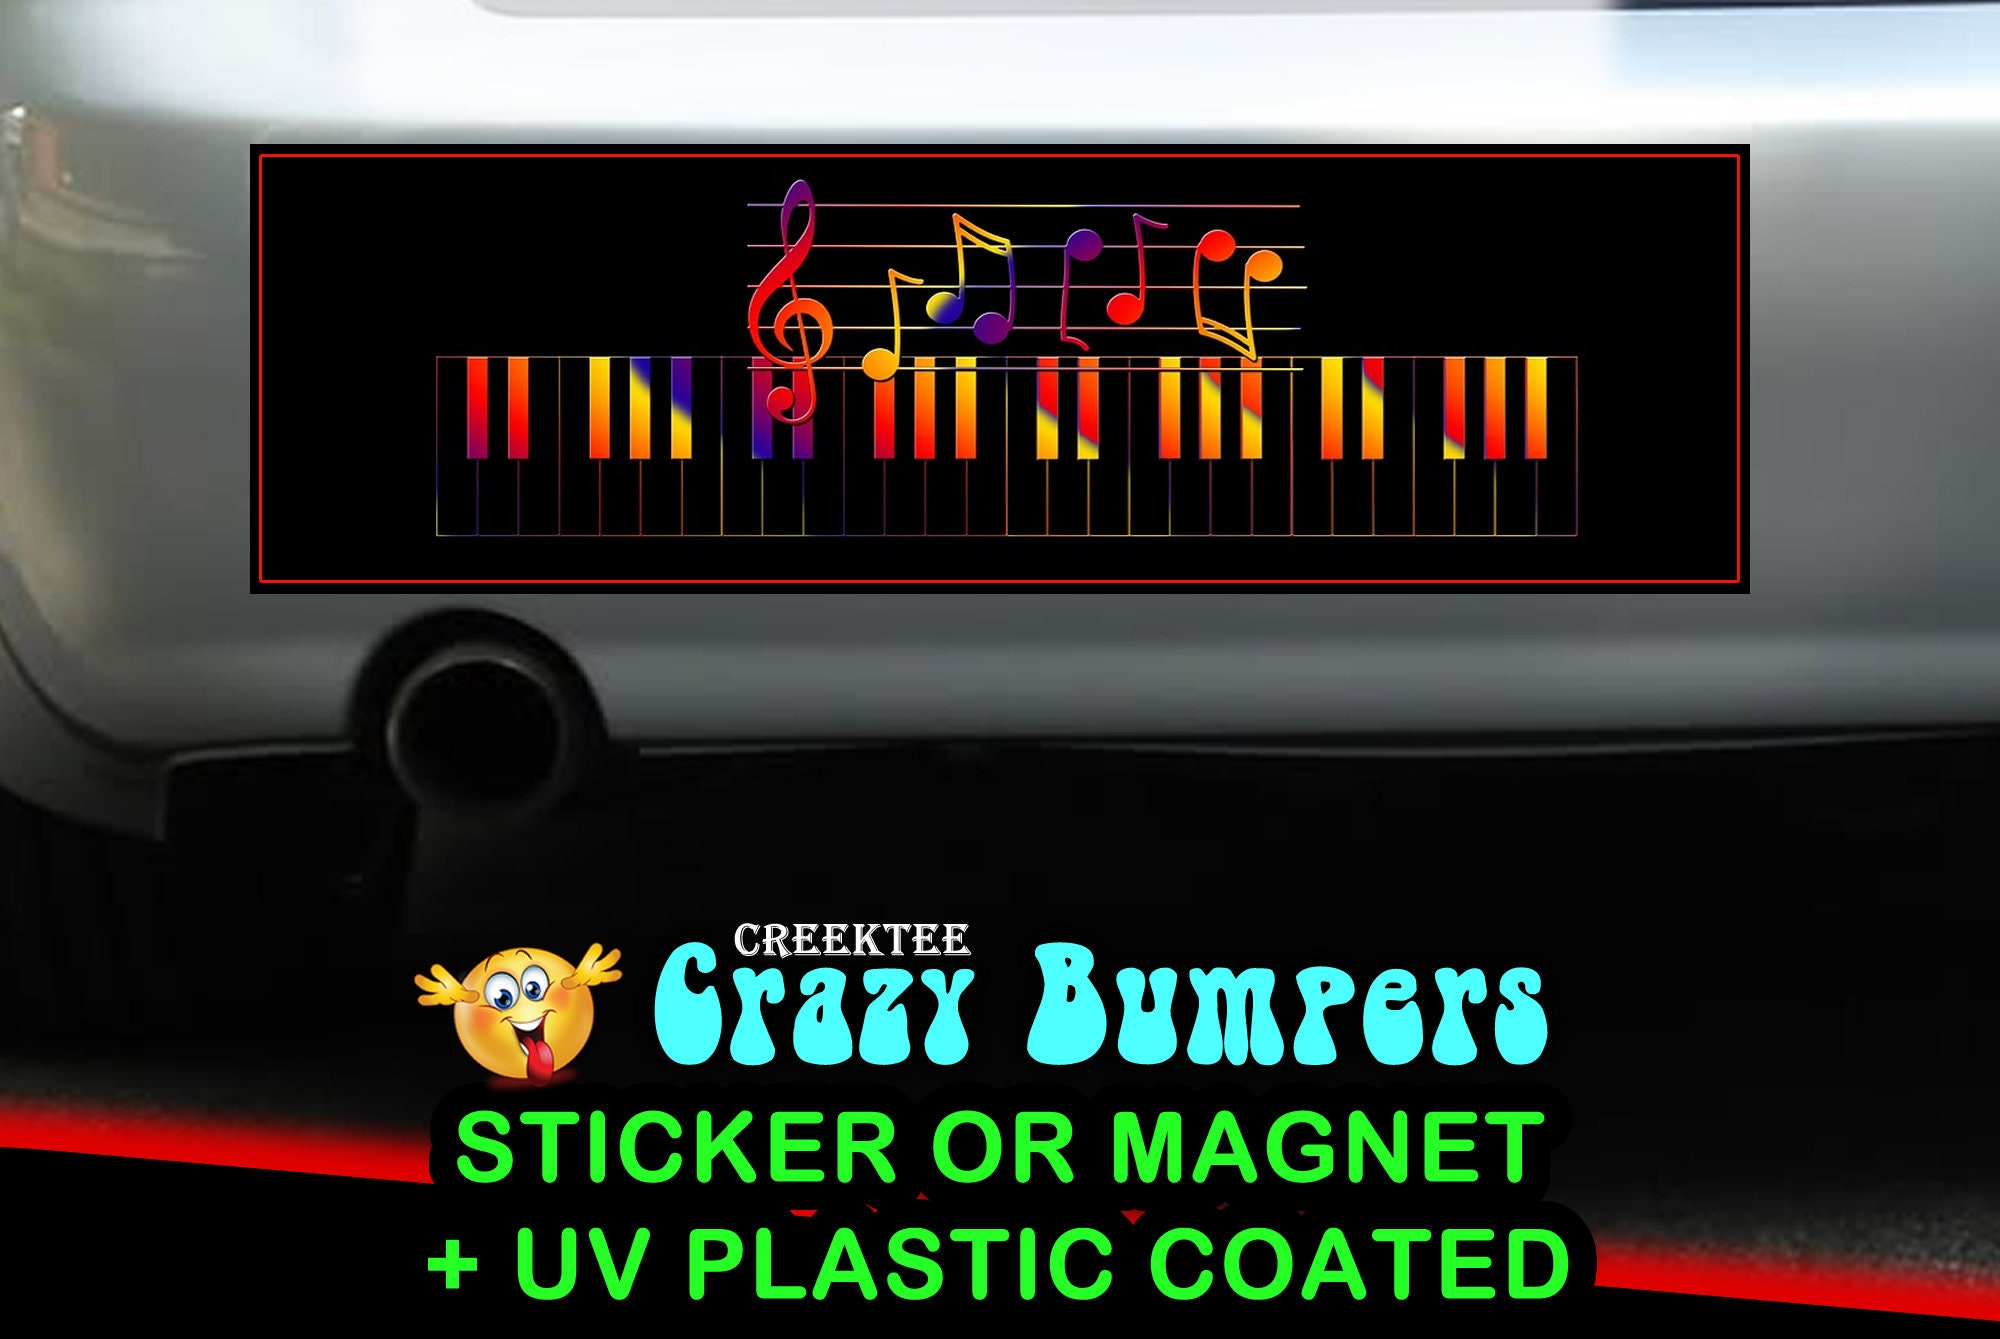 $7.99 - Music Notes 10 x 3 Bumper Sticker or Magnetic Bumper Sticker Available